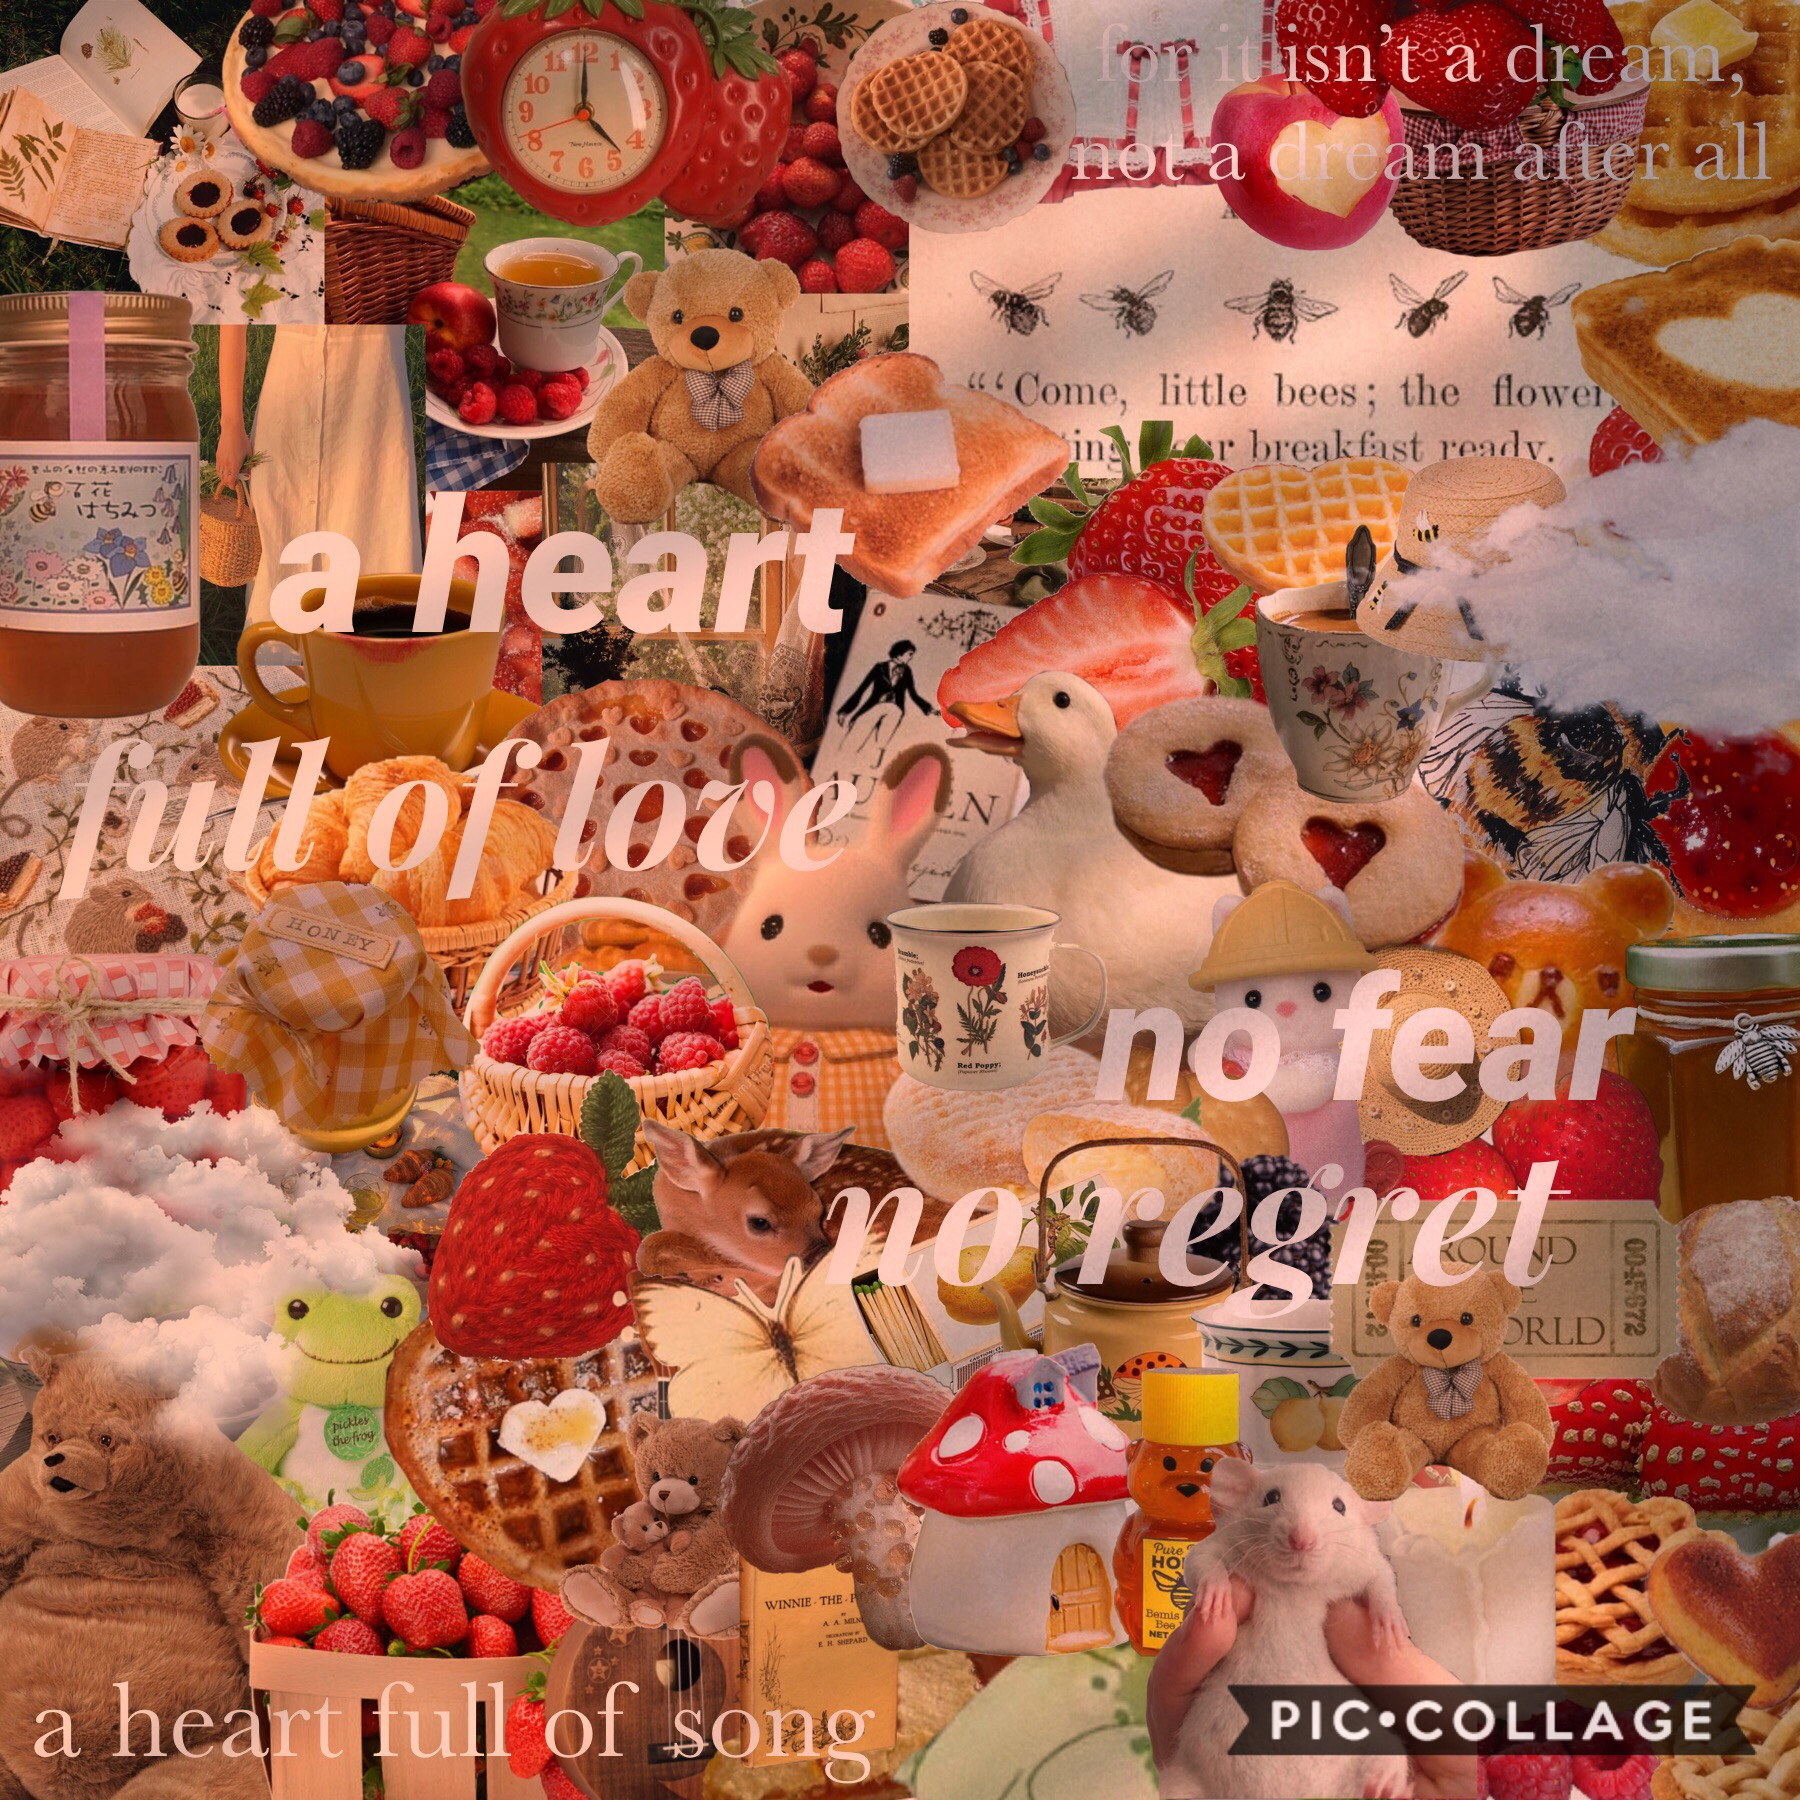 """🍓 t a p 🍓  🍯 ok so this song is """"a heart full of love"""" from les mis and it's so cute  🍯 I kinda think this is really cute? Like all the colors and stuff 🥰 🍯 How are you guyssss?"""